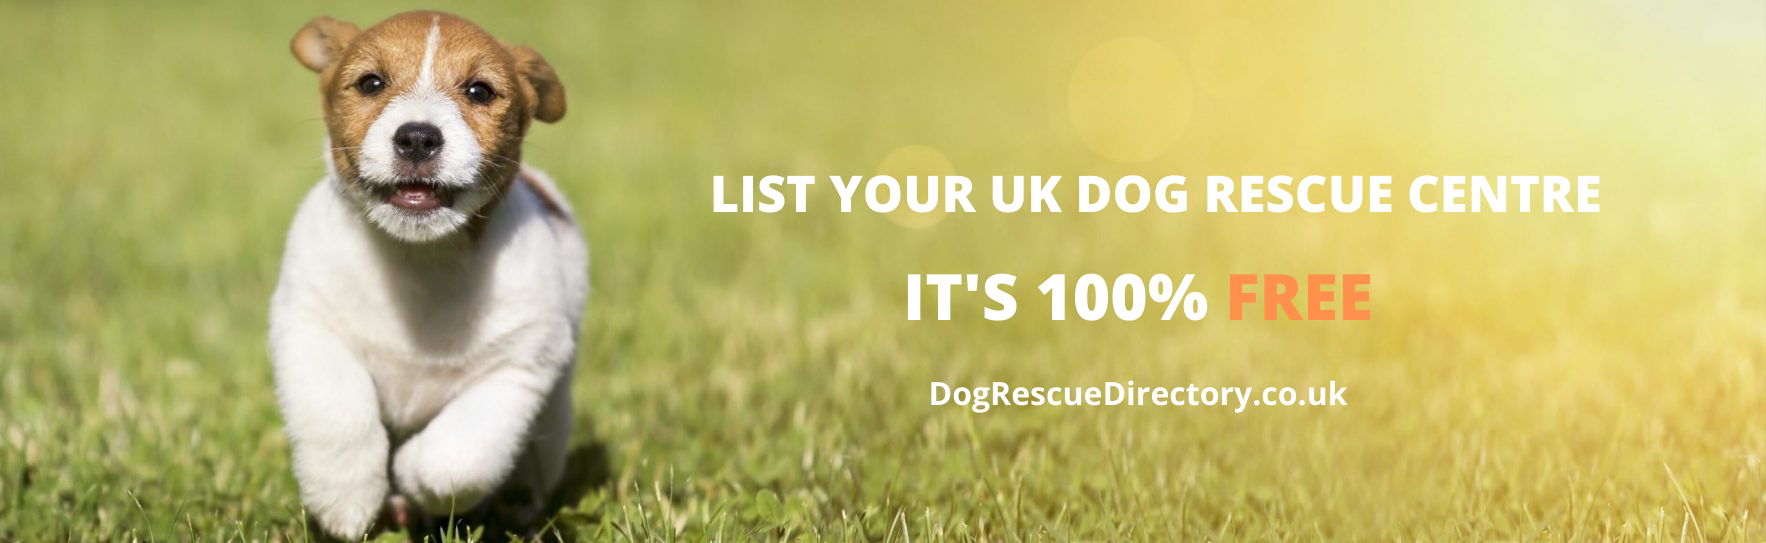 advertise your dog rescue centre